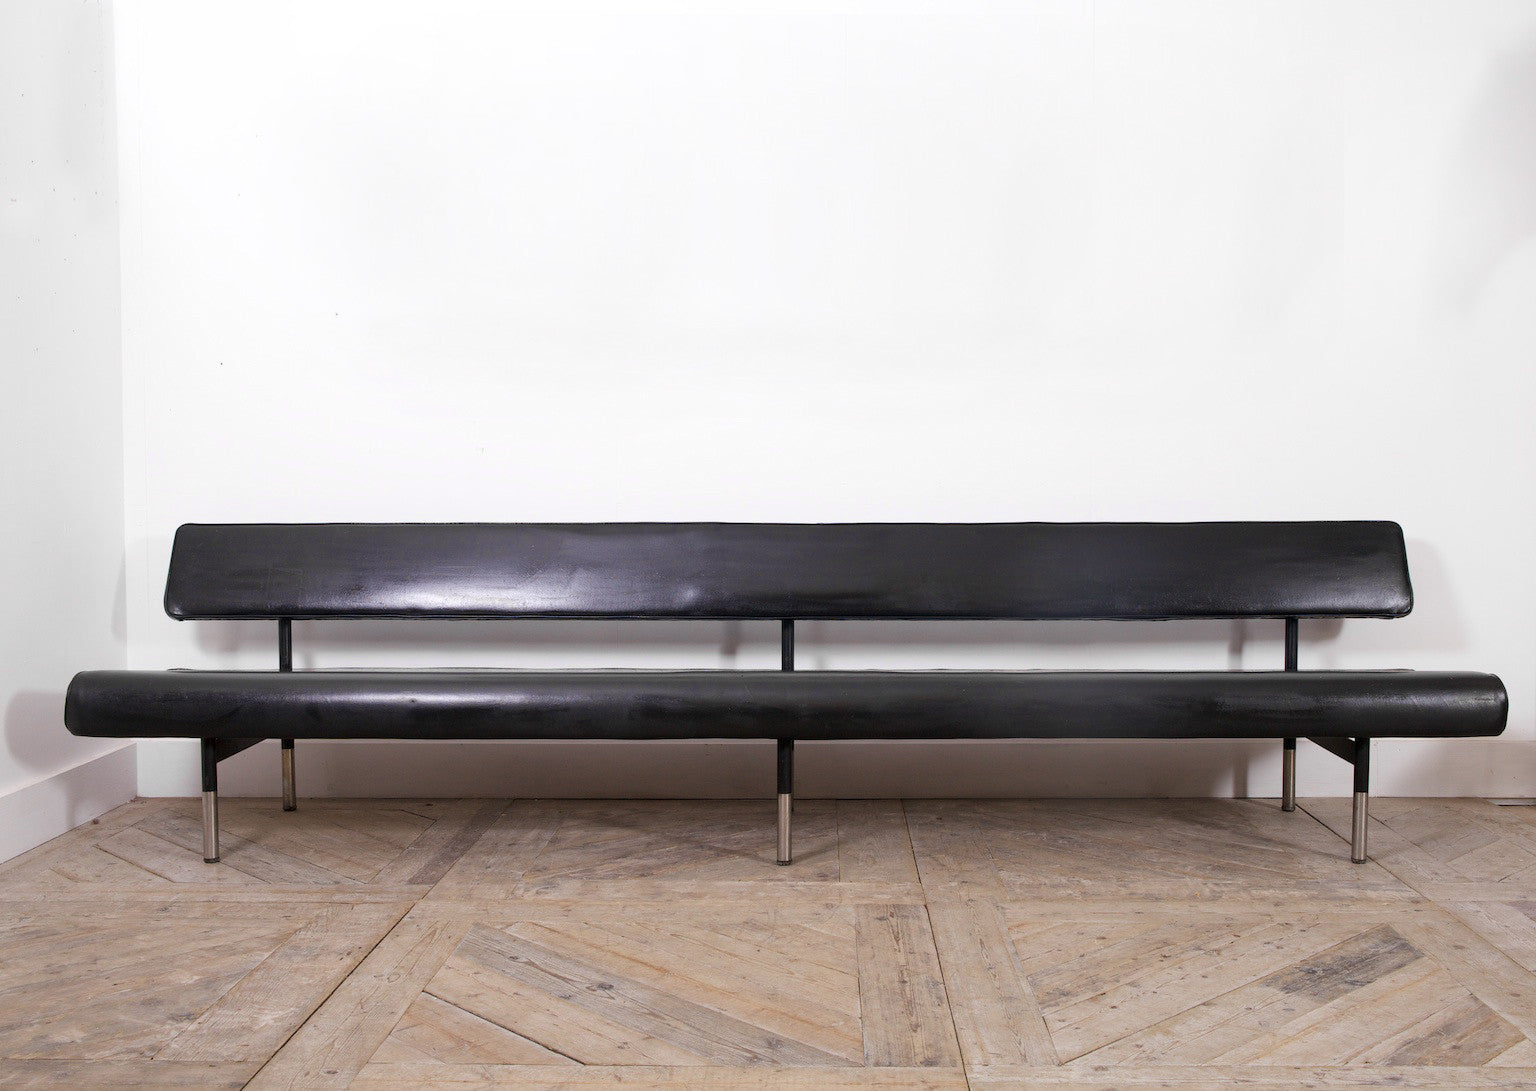 University Waiting Room Bench Drew Pritchard Ltd